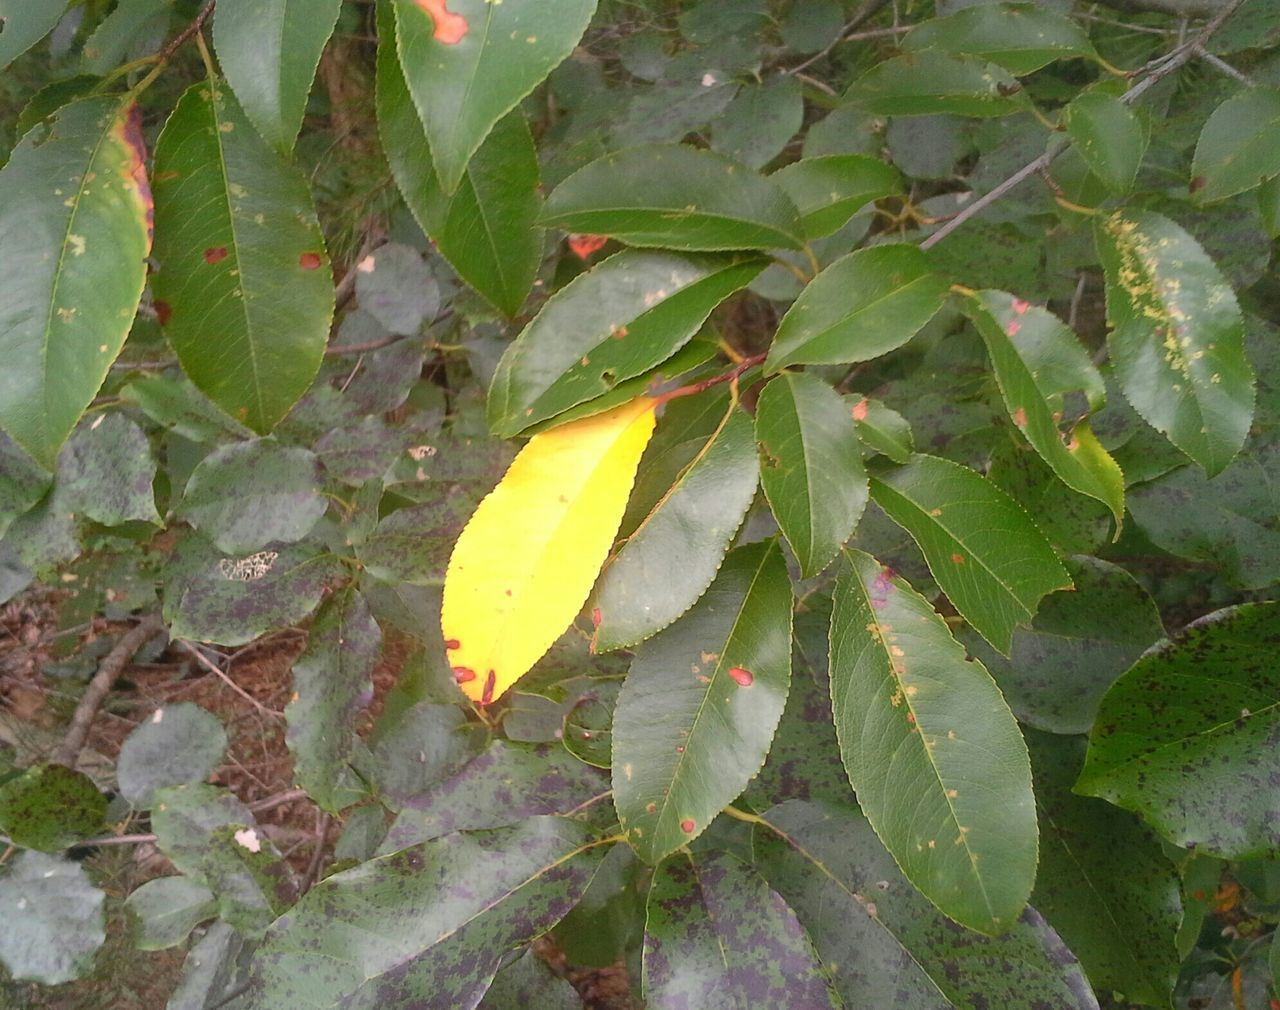 Lonely Yellow Leaf Nature Trees Tupponce Photography David Tupponce Gretna Virginia Usa